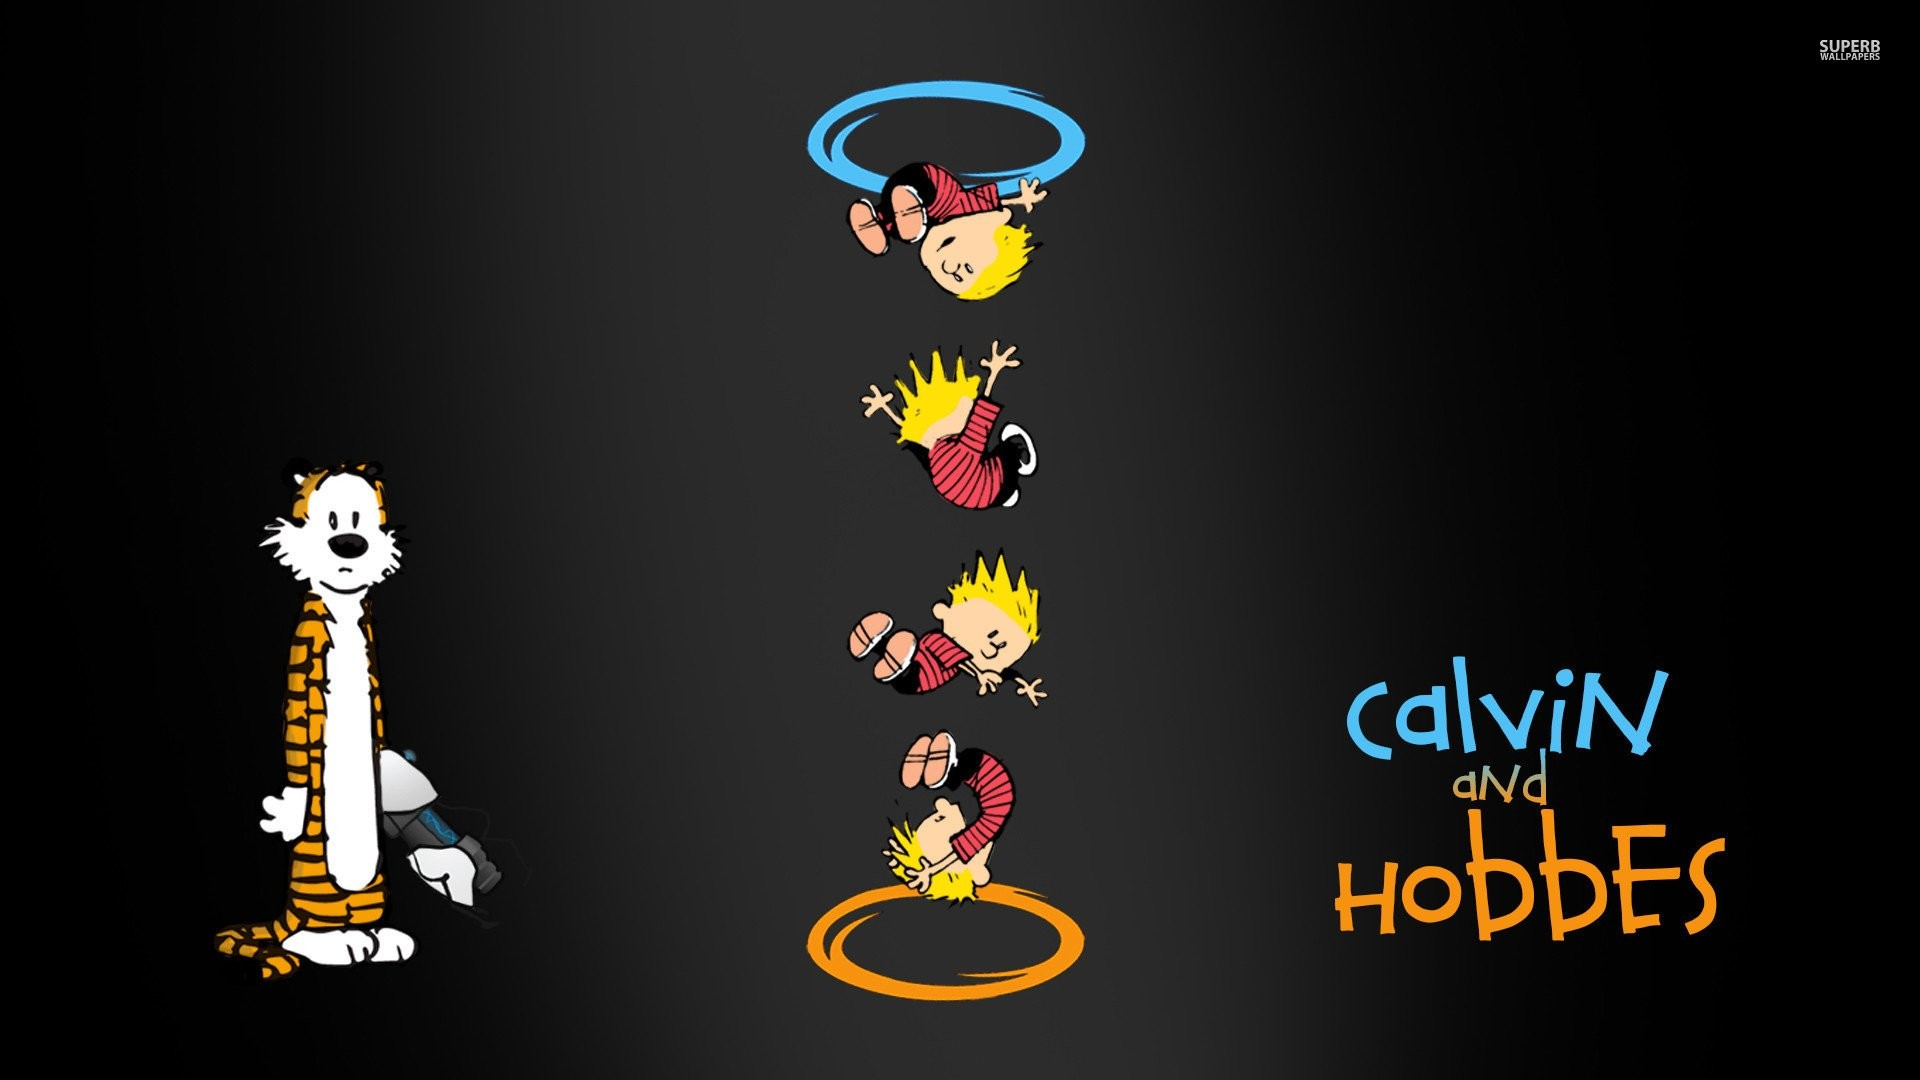 Calvin And Hobbes Portal Crossover